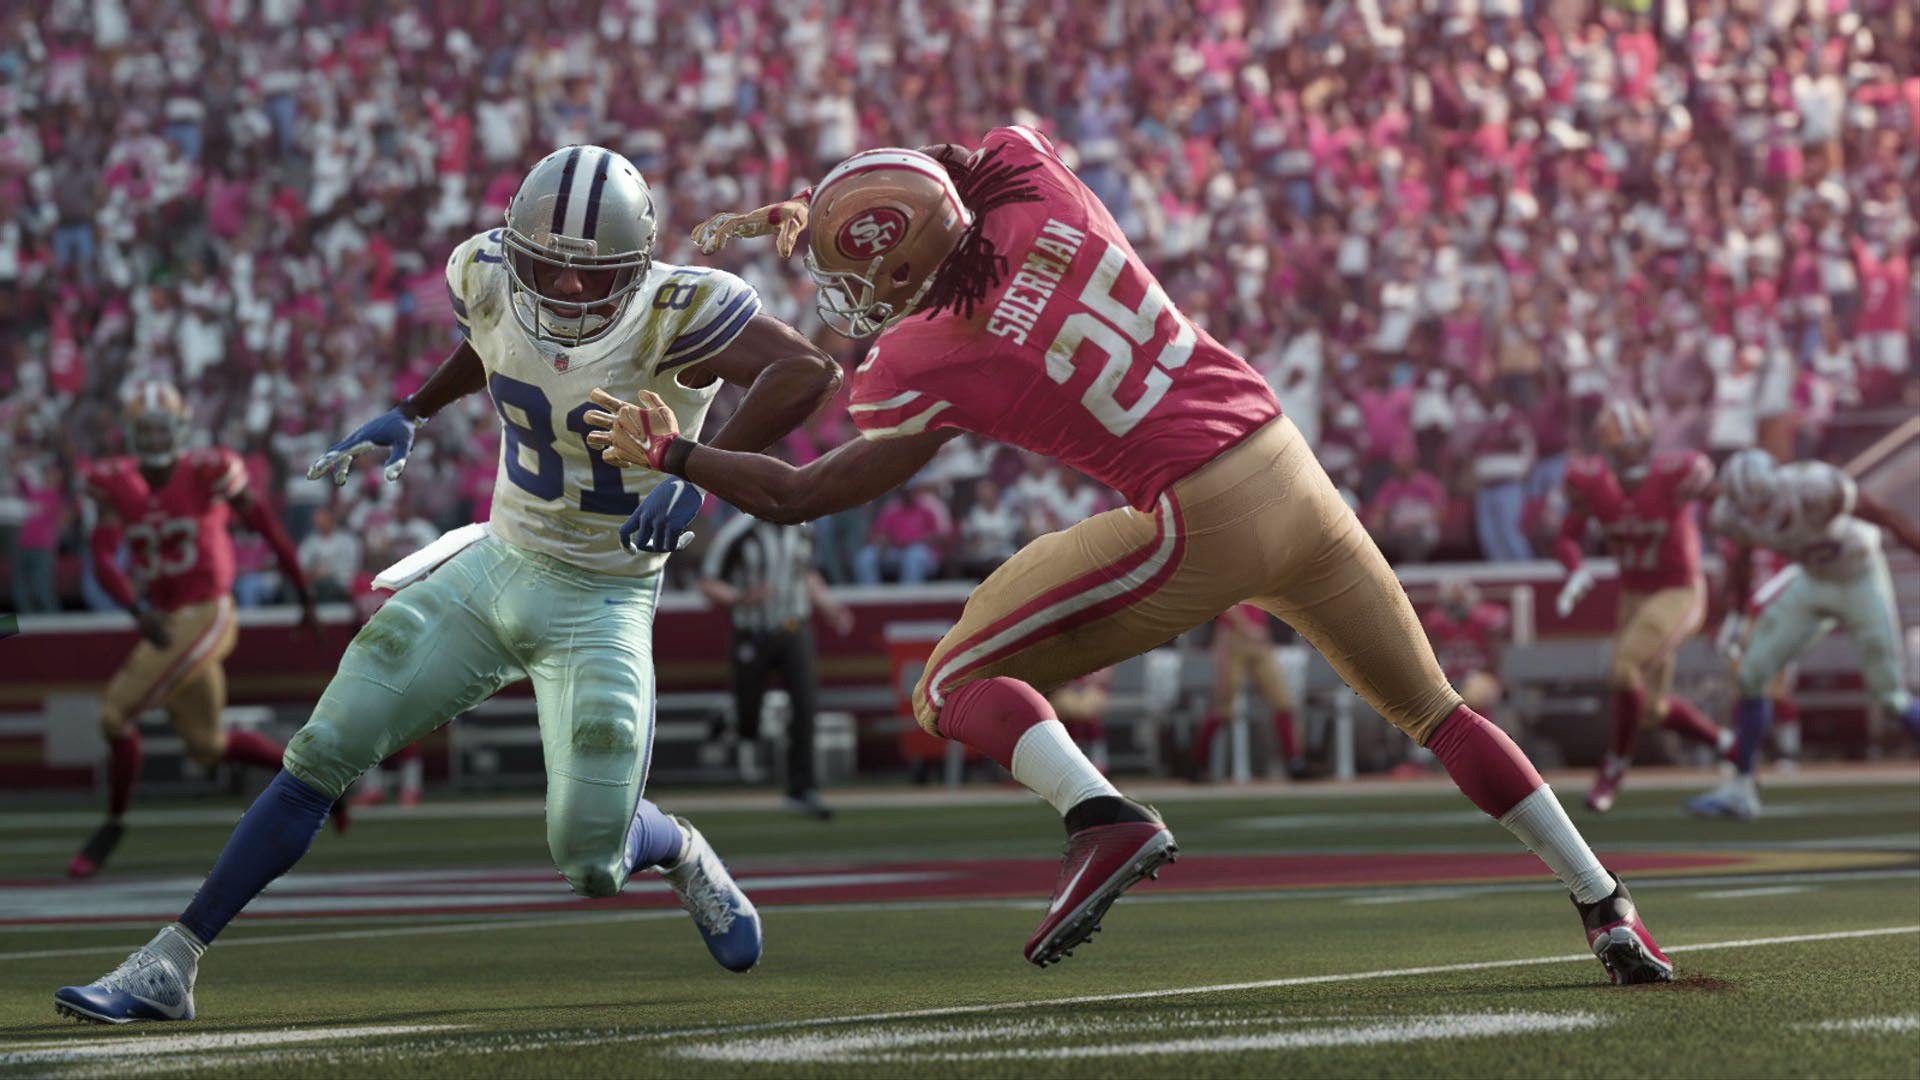 The 8 Best PC Football Games for PC in 2019